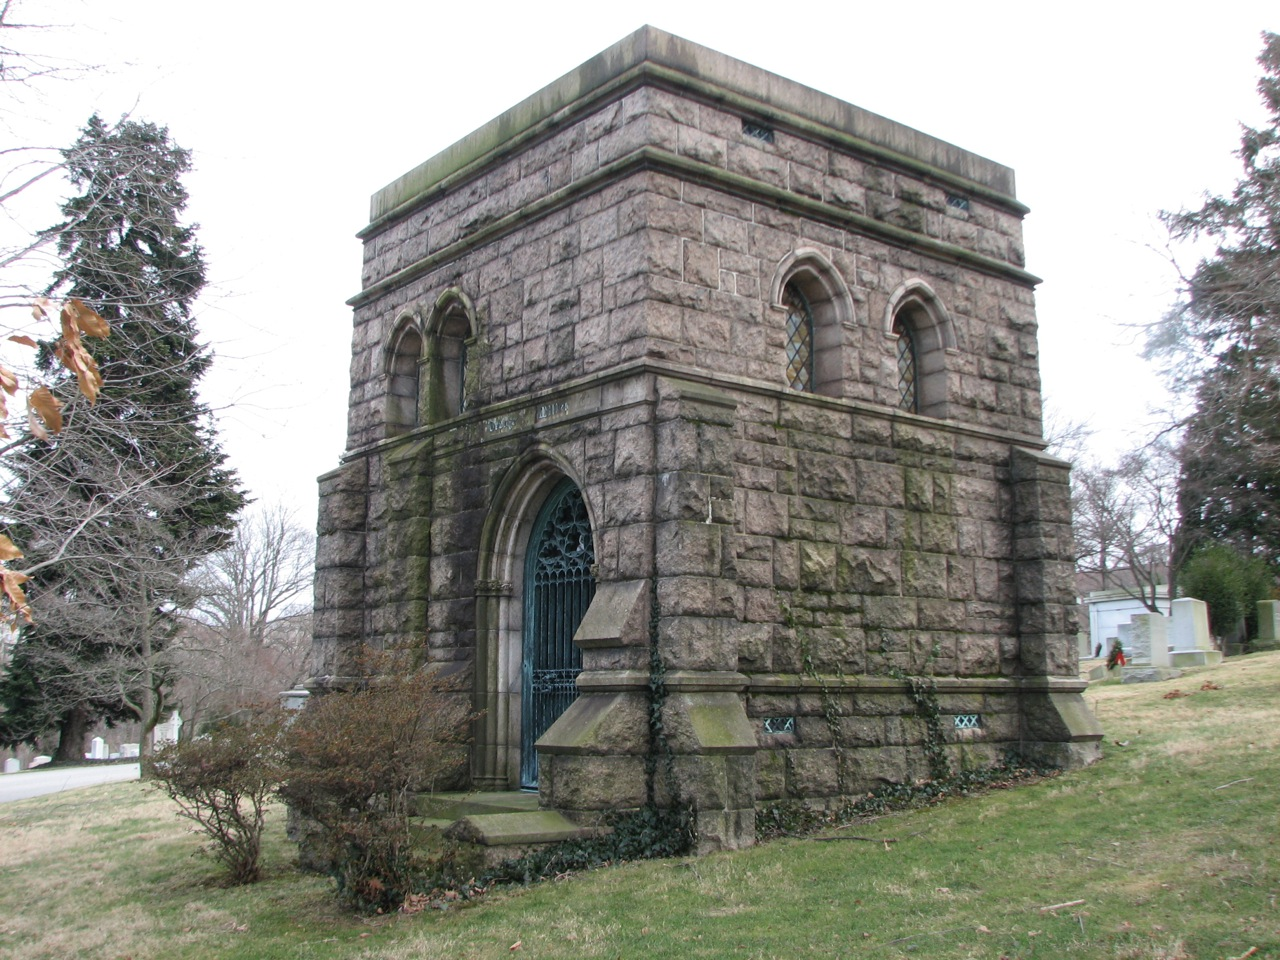 A tomb of rough-hewn stone resembles a Gothic castle.